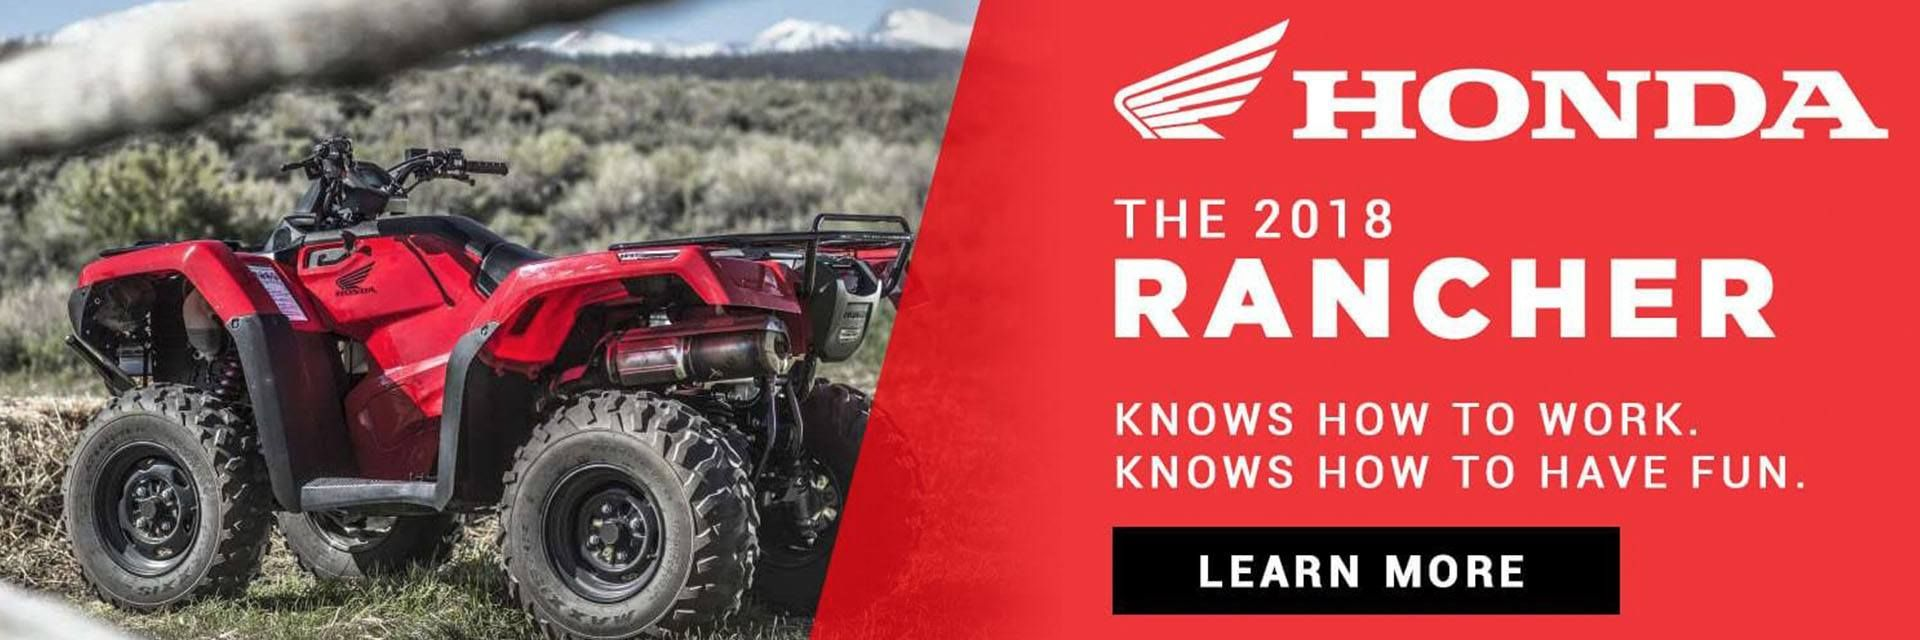 Shop Honda Rancher ATVs at Christman's Cycle Sales in Palatine Bridge, NY